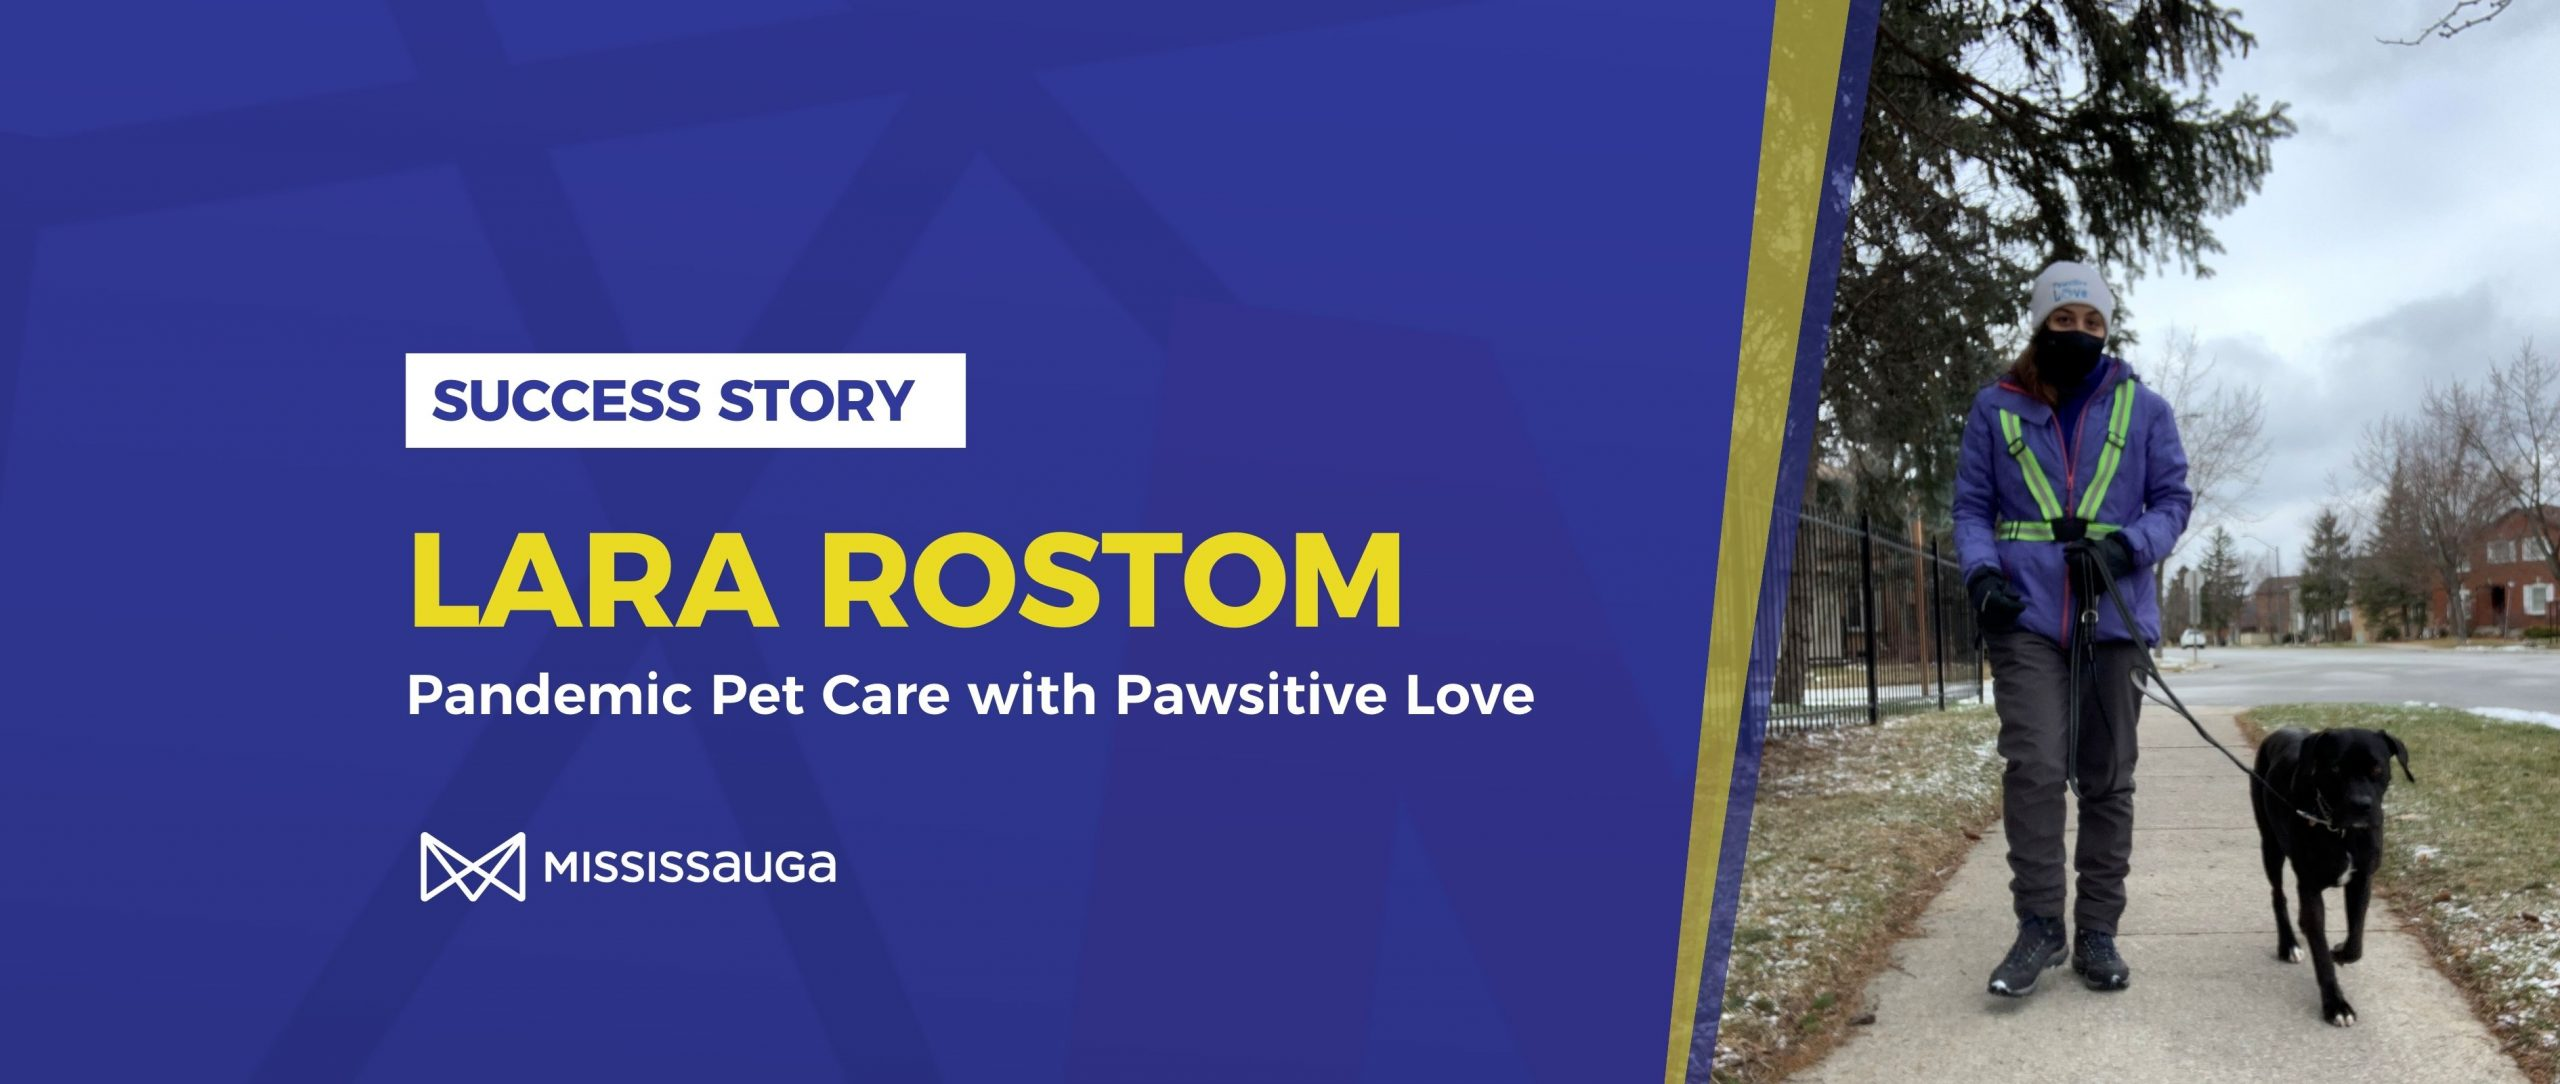 Lara Rostom: Pandemic Pet Care with Pawsitive Love